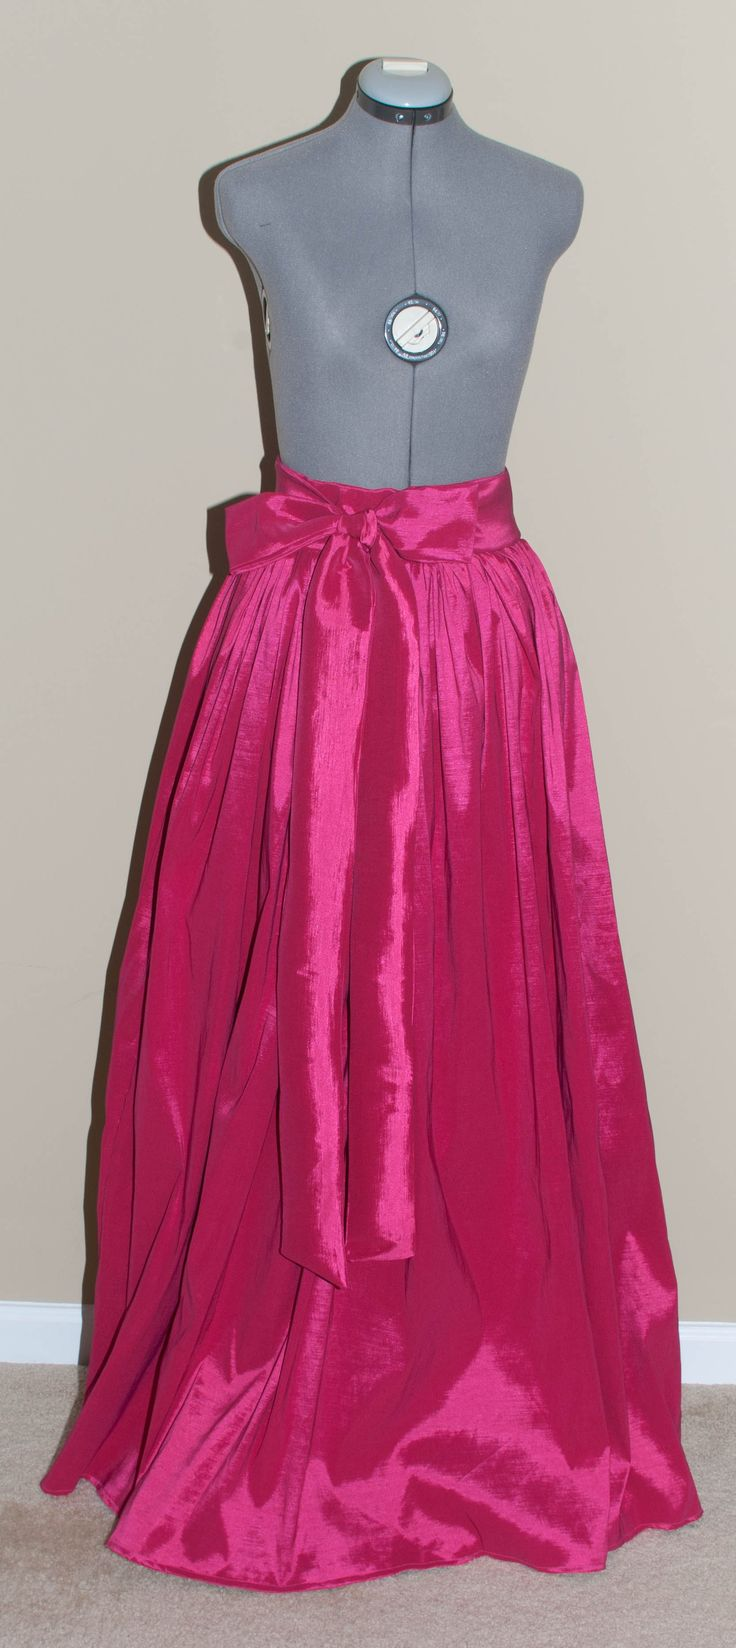 The Ball Gown Diy: Taffeta Full Skirt Tutorial + link to tutorial for short, pleated skirt with pockets